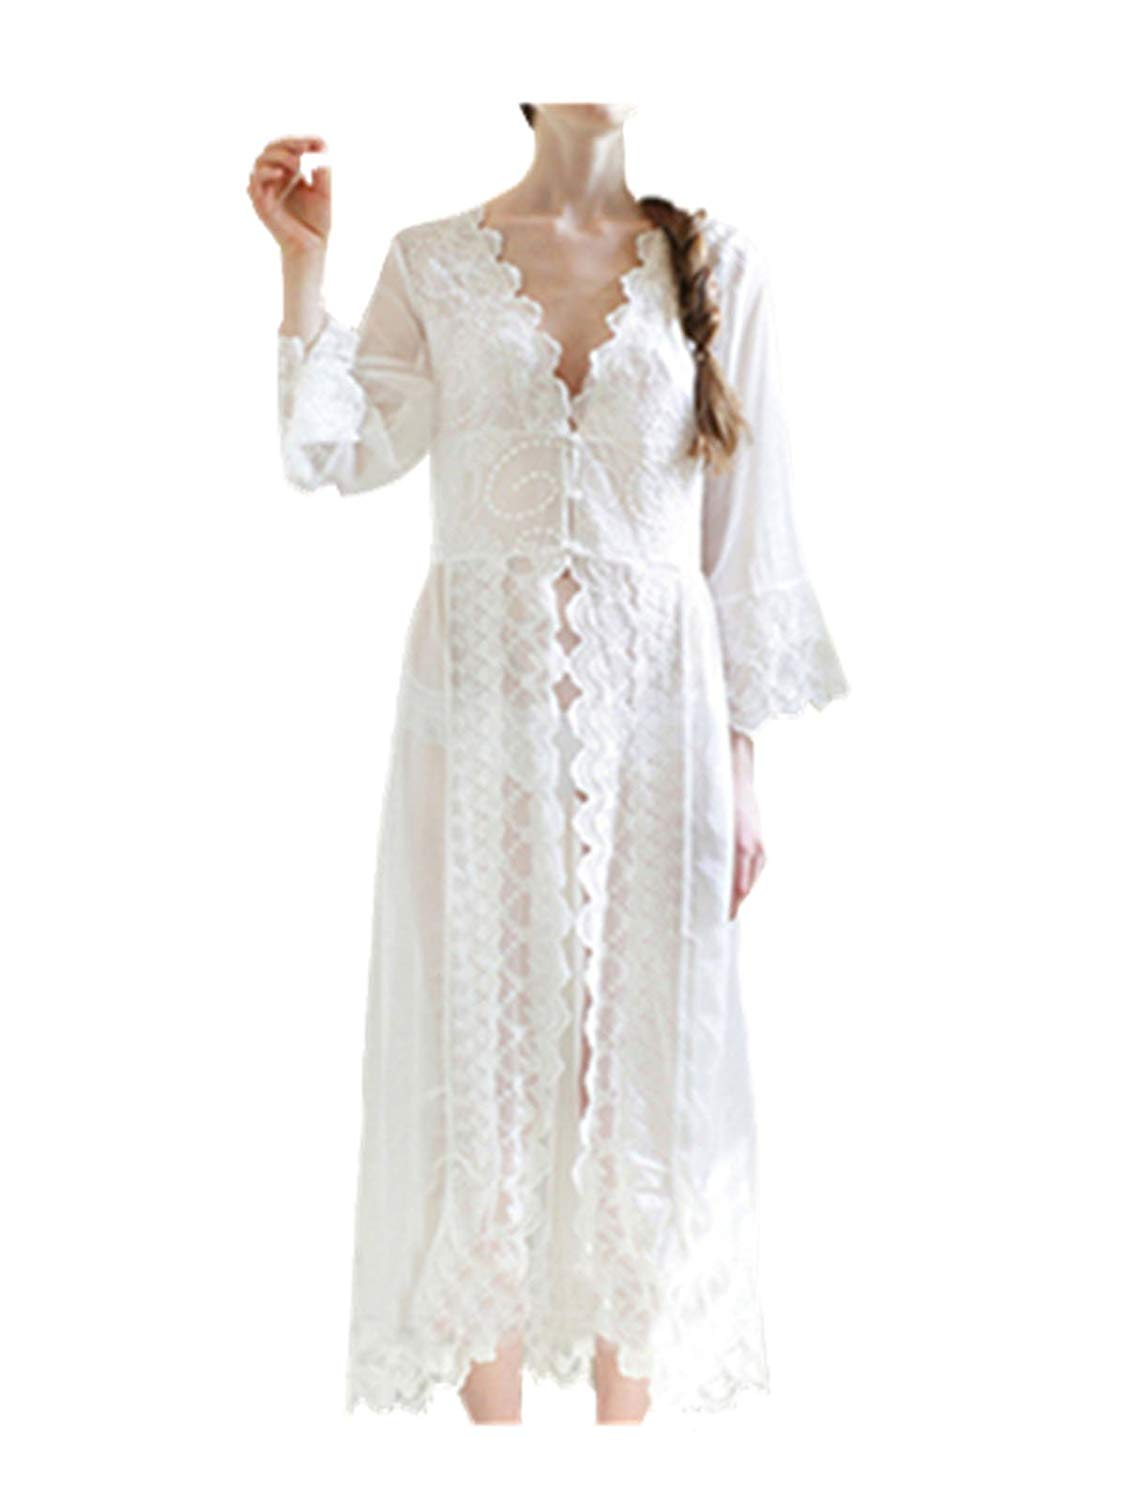 f506cff89ca50 Cheap Sheer Nightwear Women, find Sheer Nightwear Women deals on ...